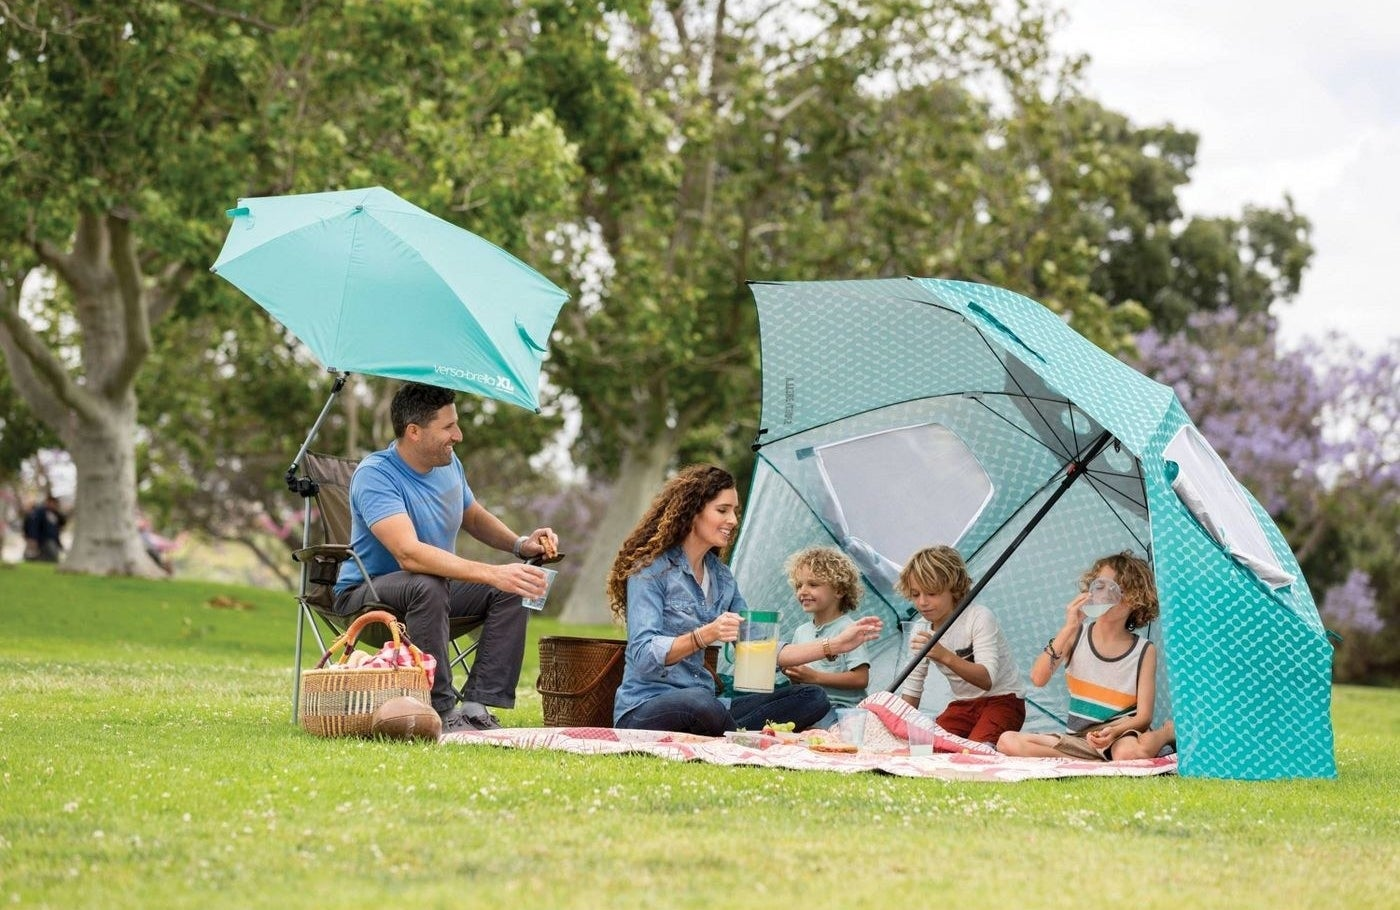 A family sitting under a large teal umbrella